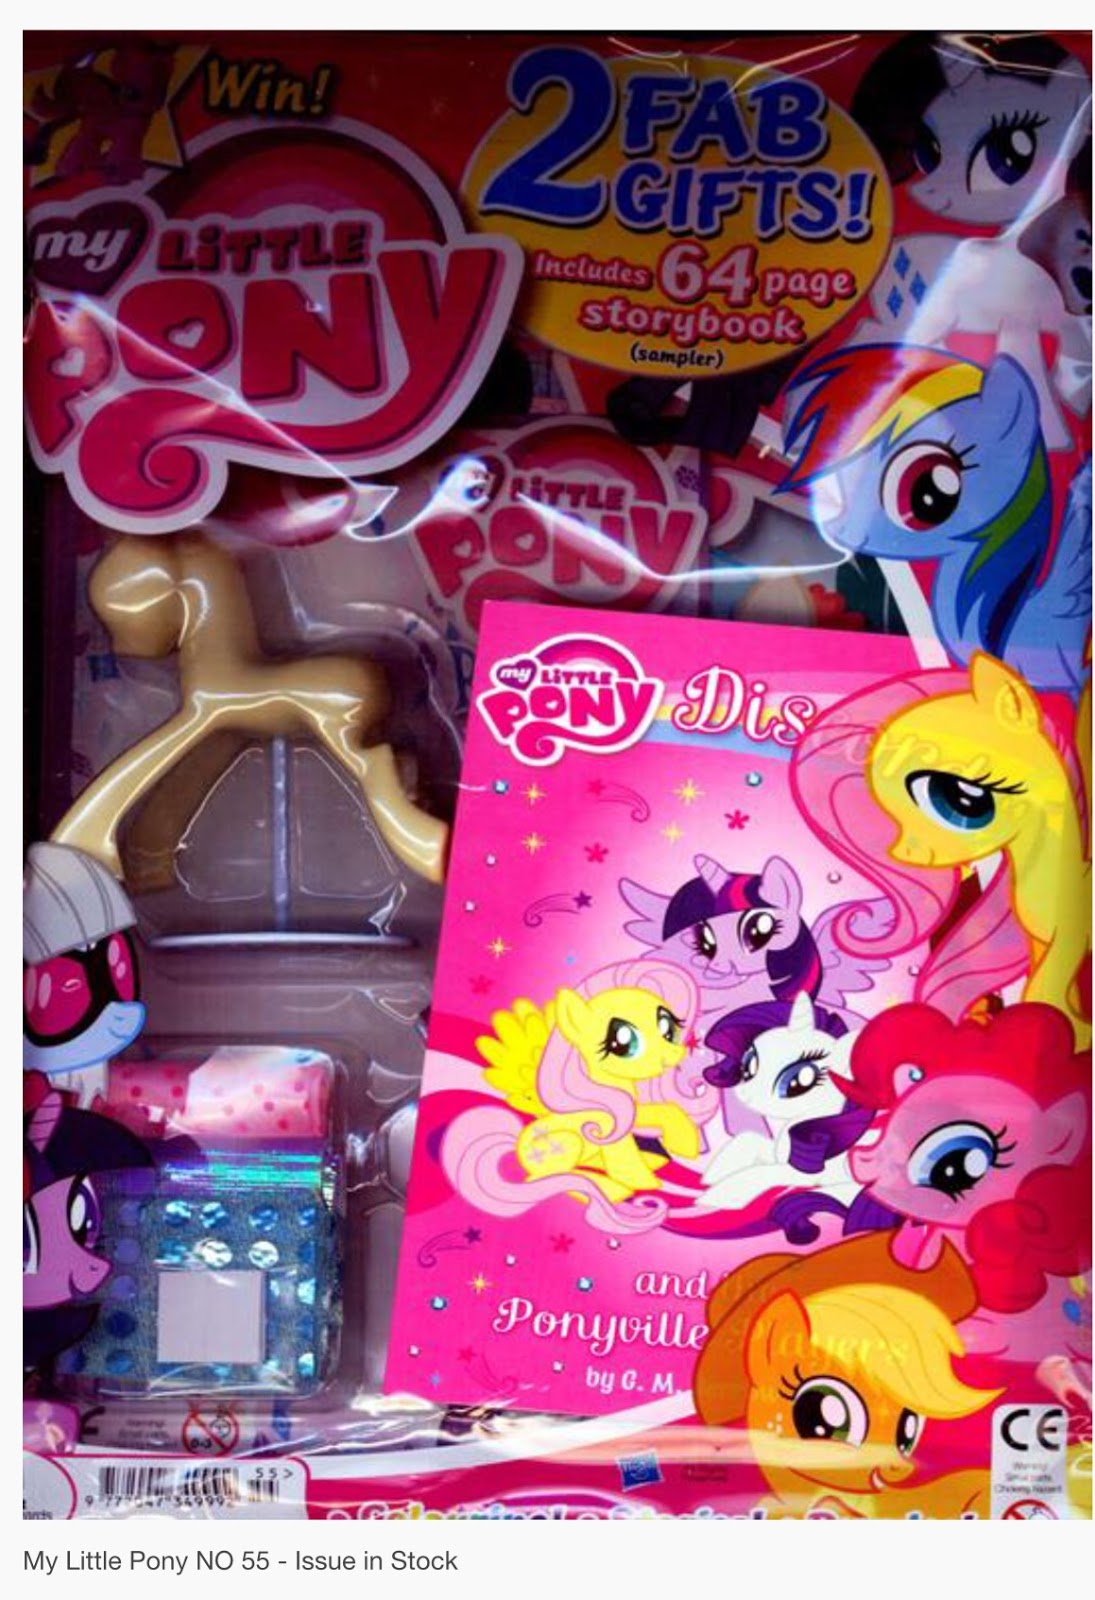 uk mlp magazine 55 comes with book mannequin mlp merch